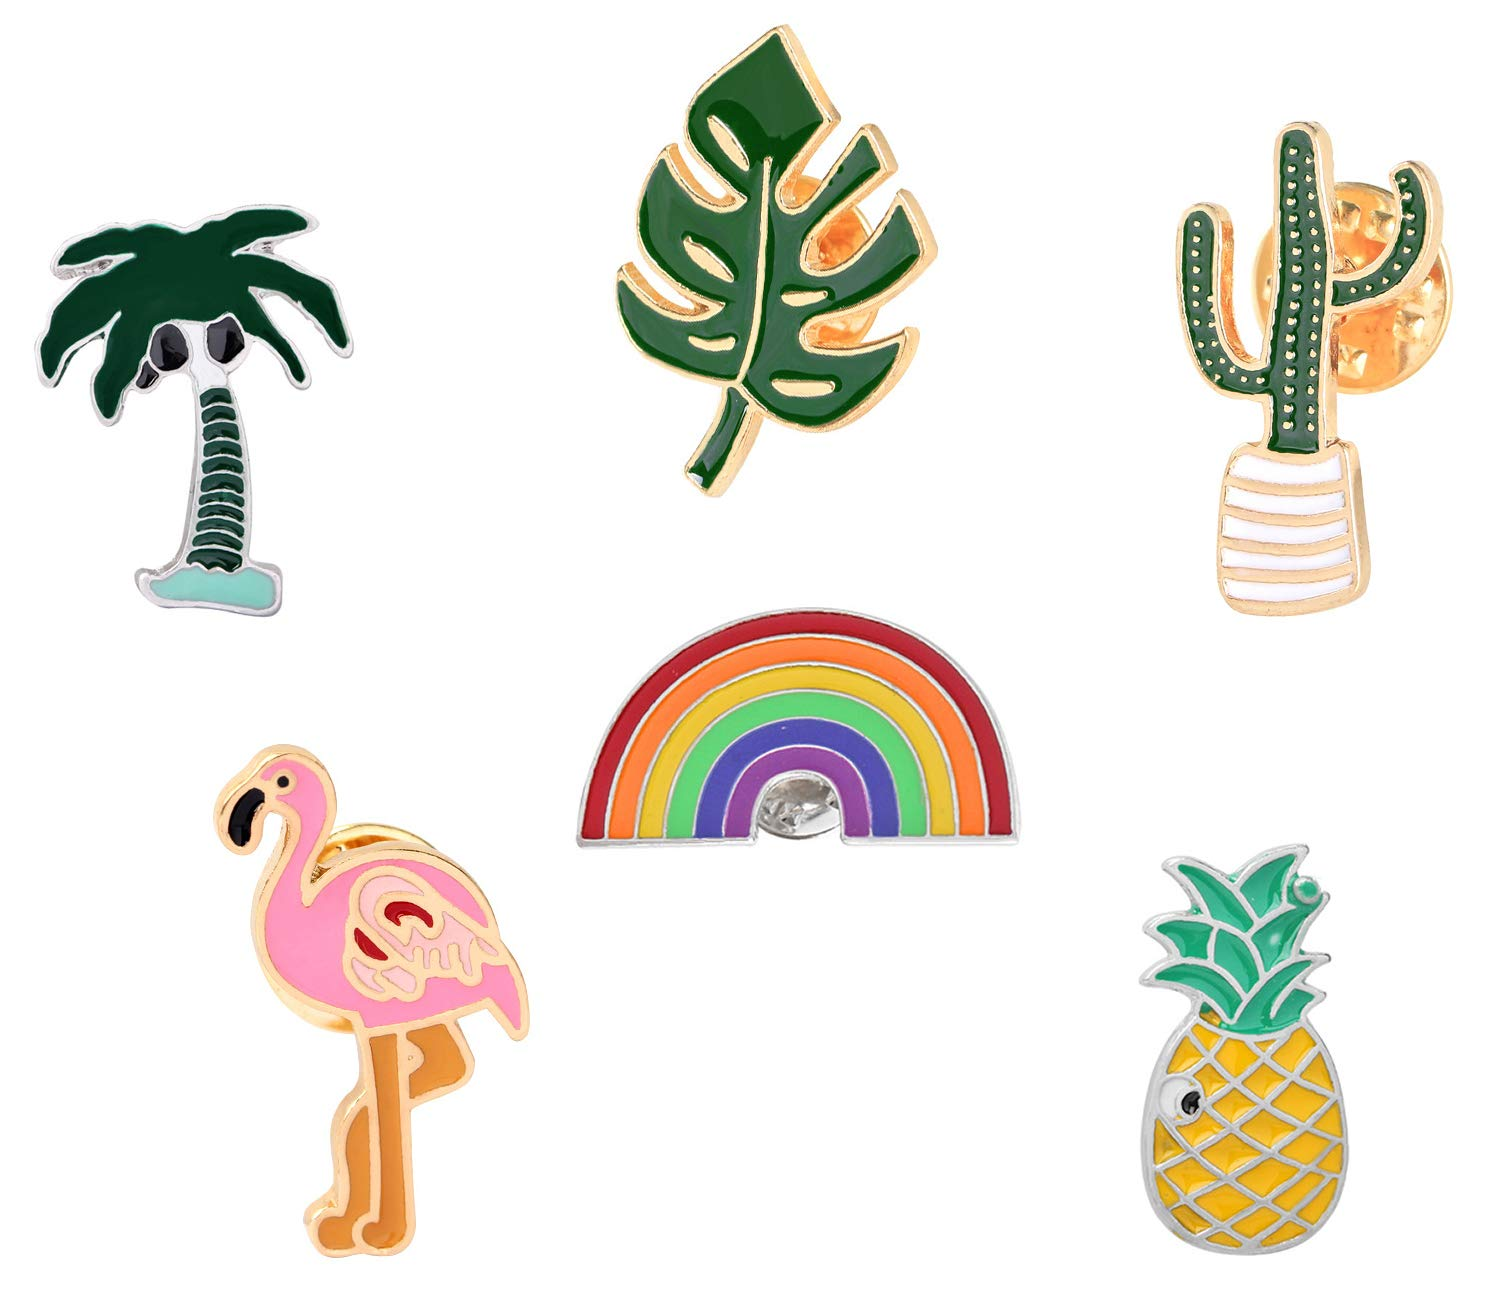 9d2d308f2f41 Enamel Pin Sets Cute Pins Funny Animal Lapel Pin Brooch Pin for Backpack  (Rainbow Cactus Set of 6)